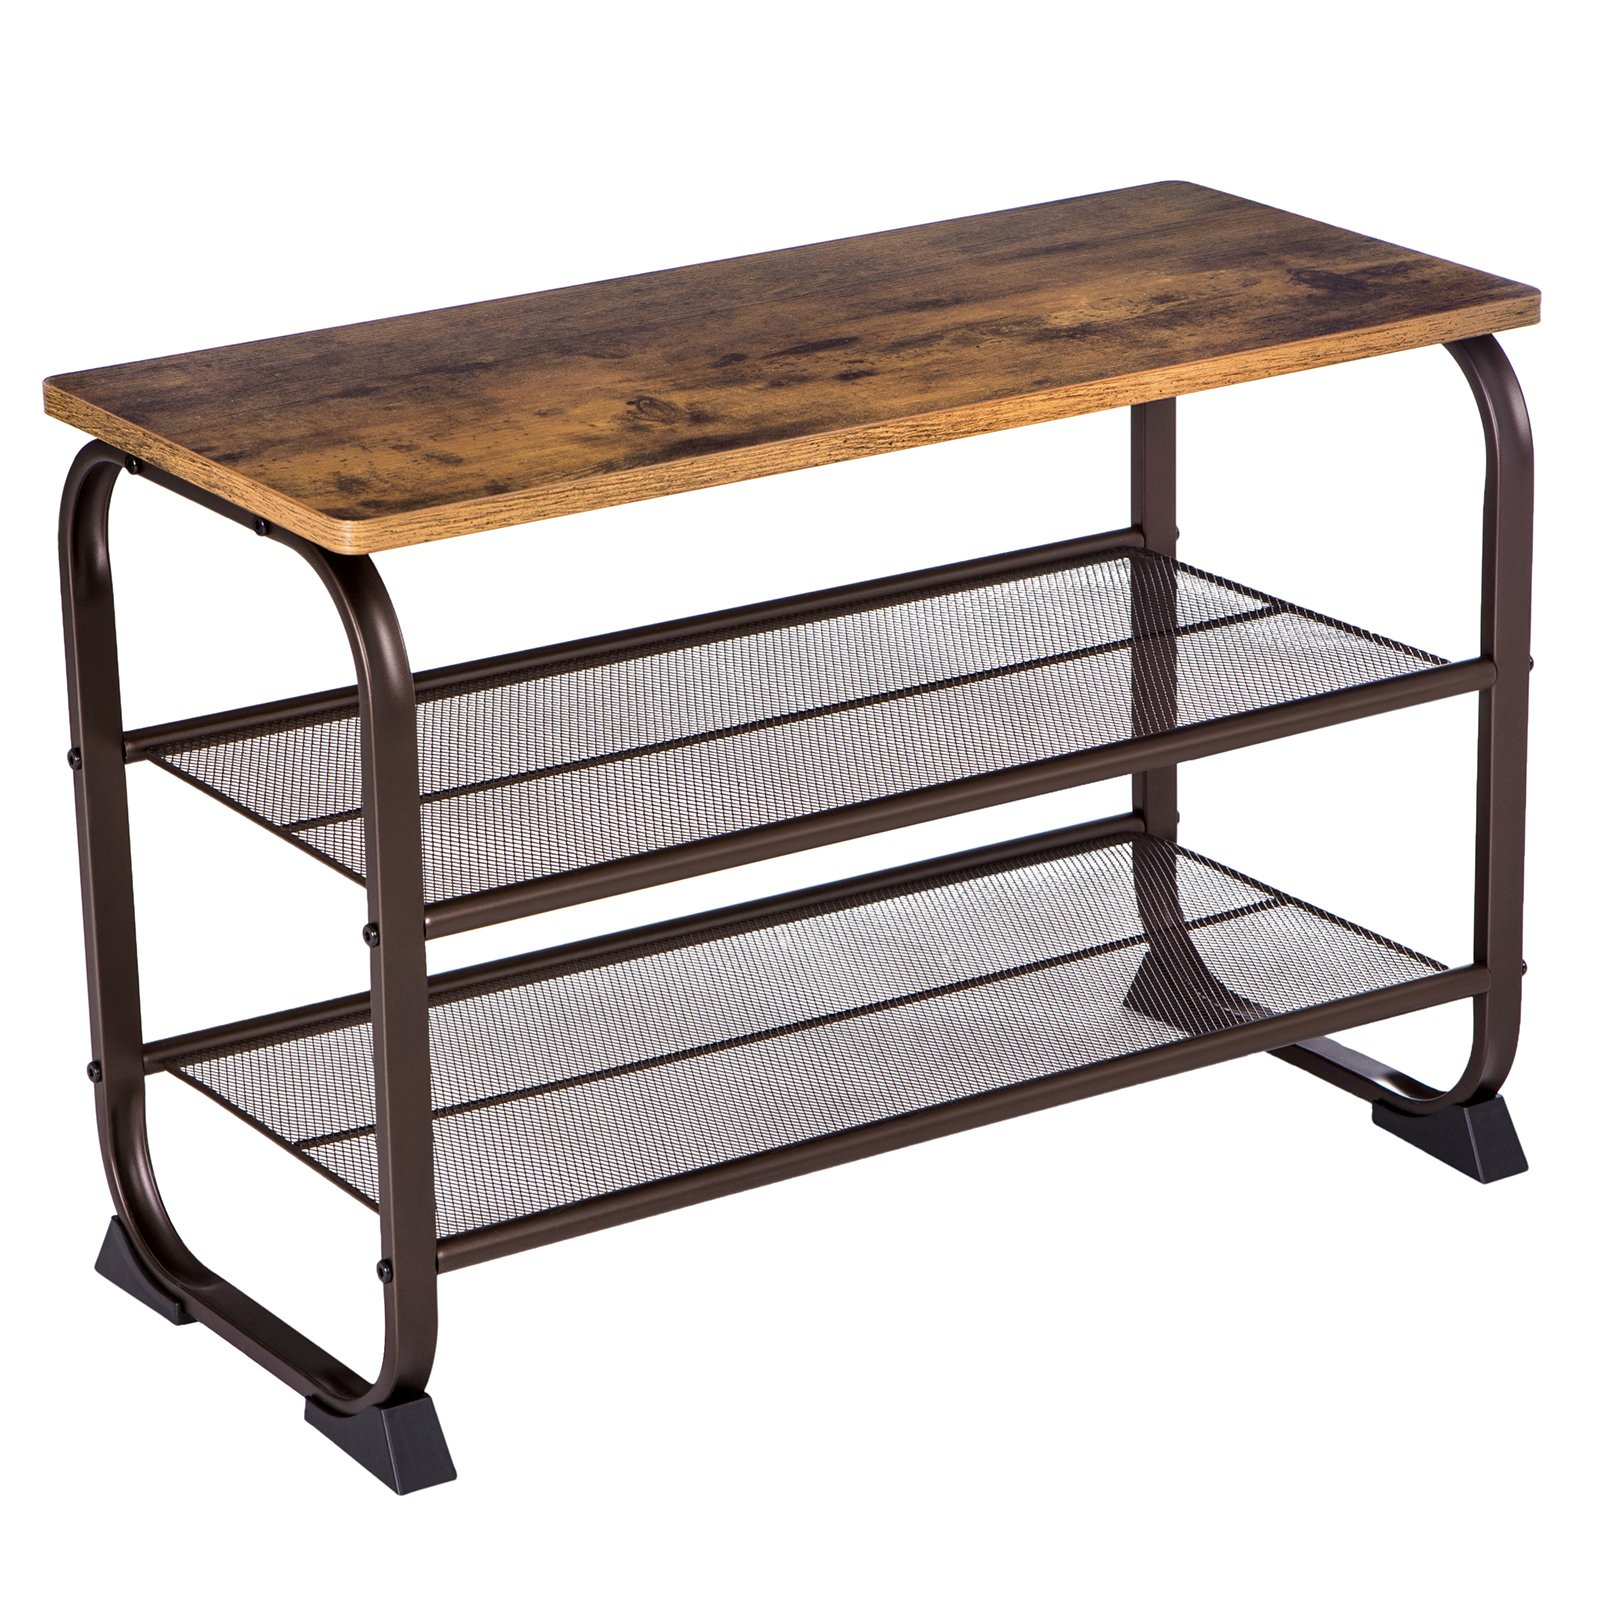 VASAGLE Industrial Shoe Bench Rack, 3-Tier Shoe Storage Shelf for Entryway Hallway Living Room, Wood Look Accent Furniture with Metal Frame, Easy Assembly ULMR32A by VASAGLE